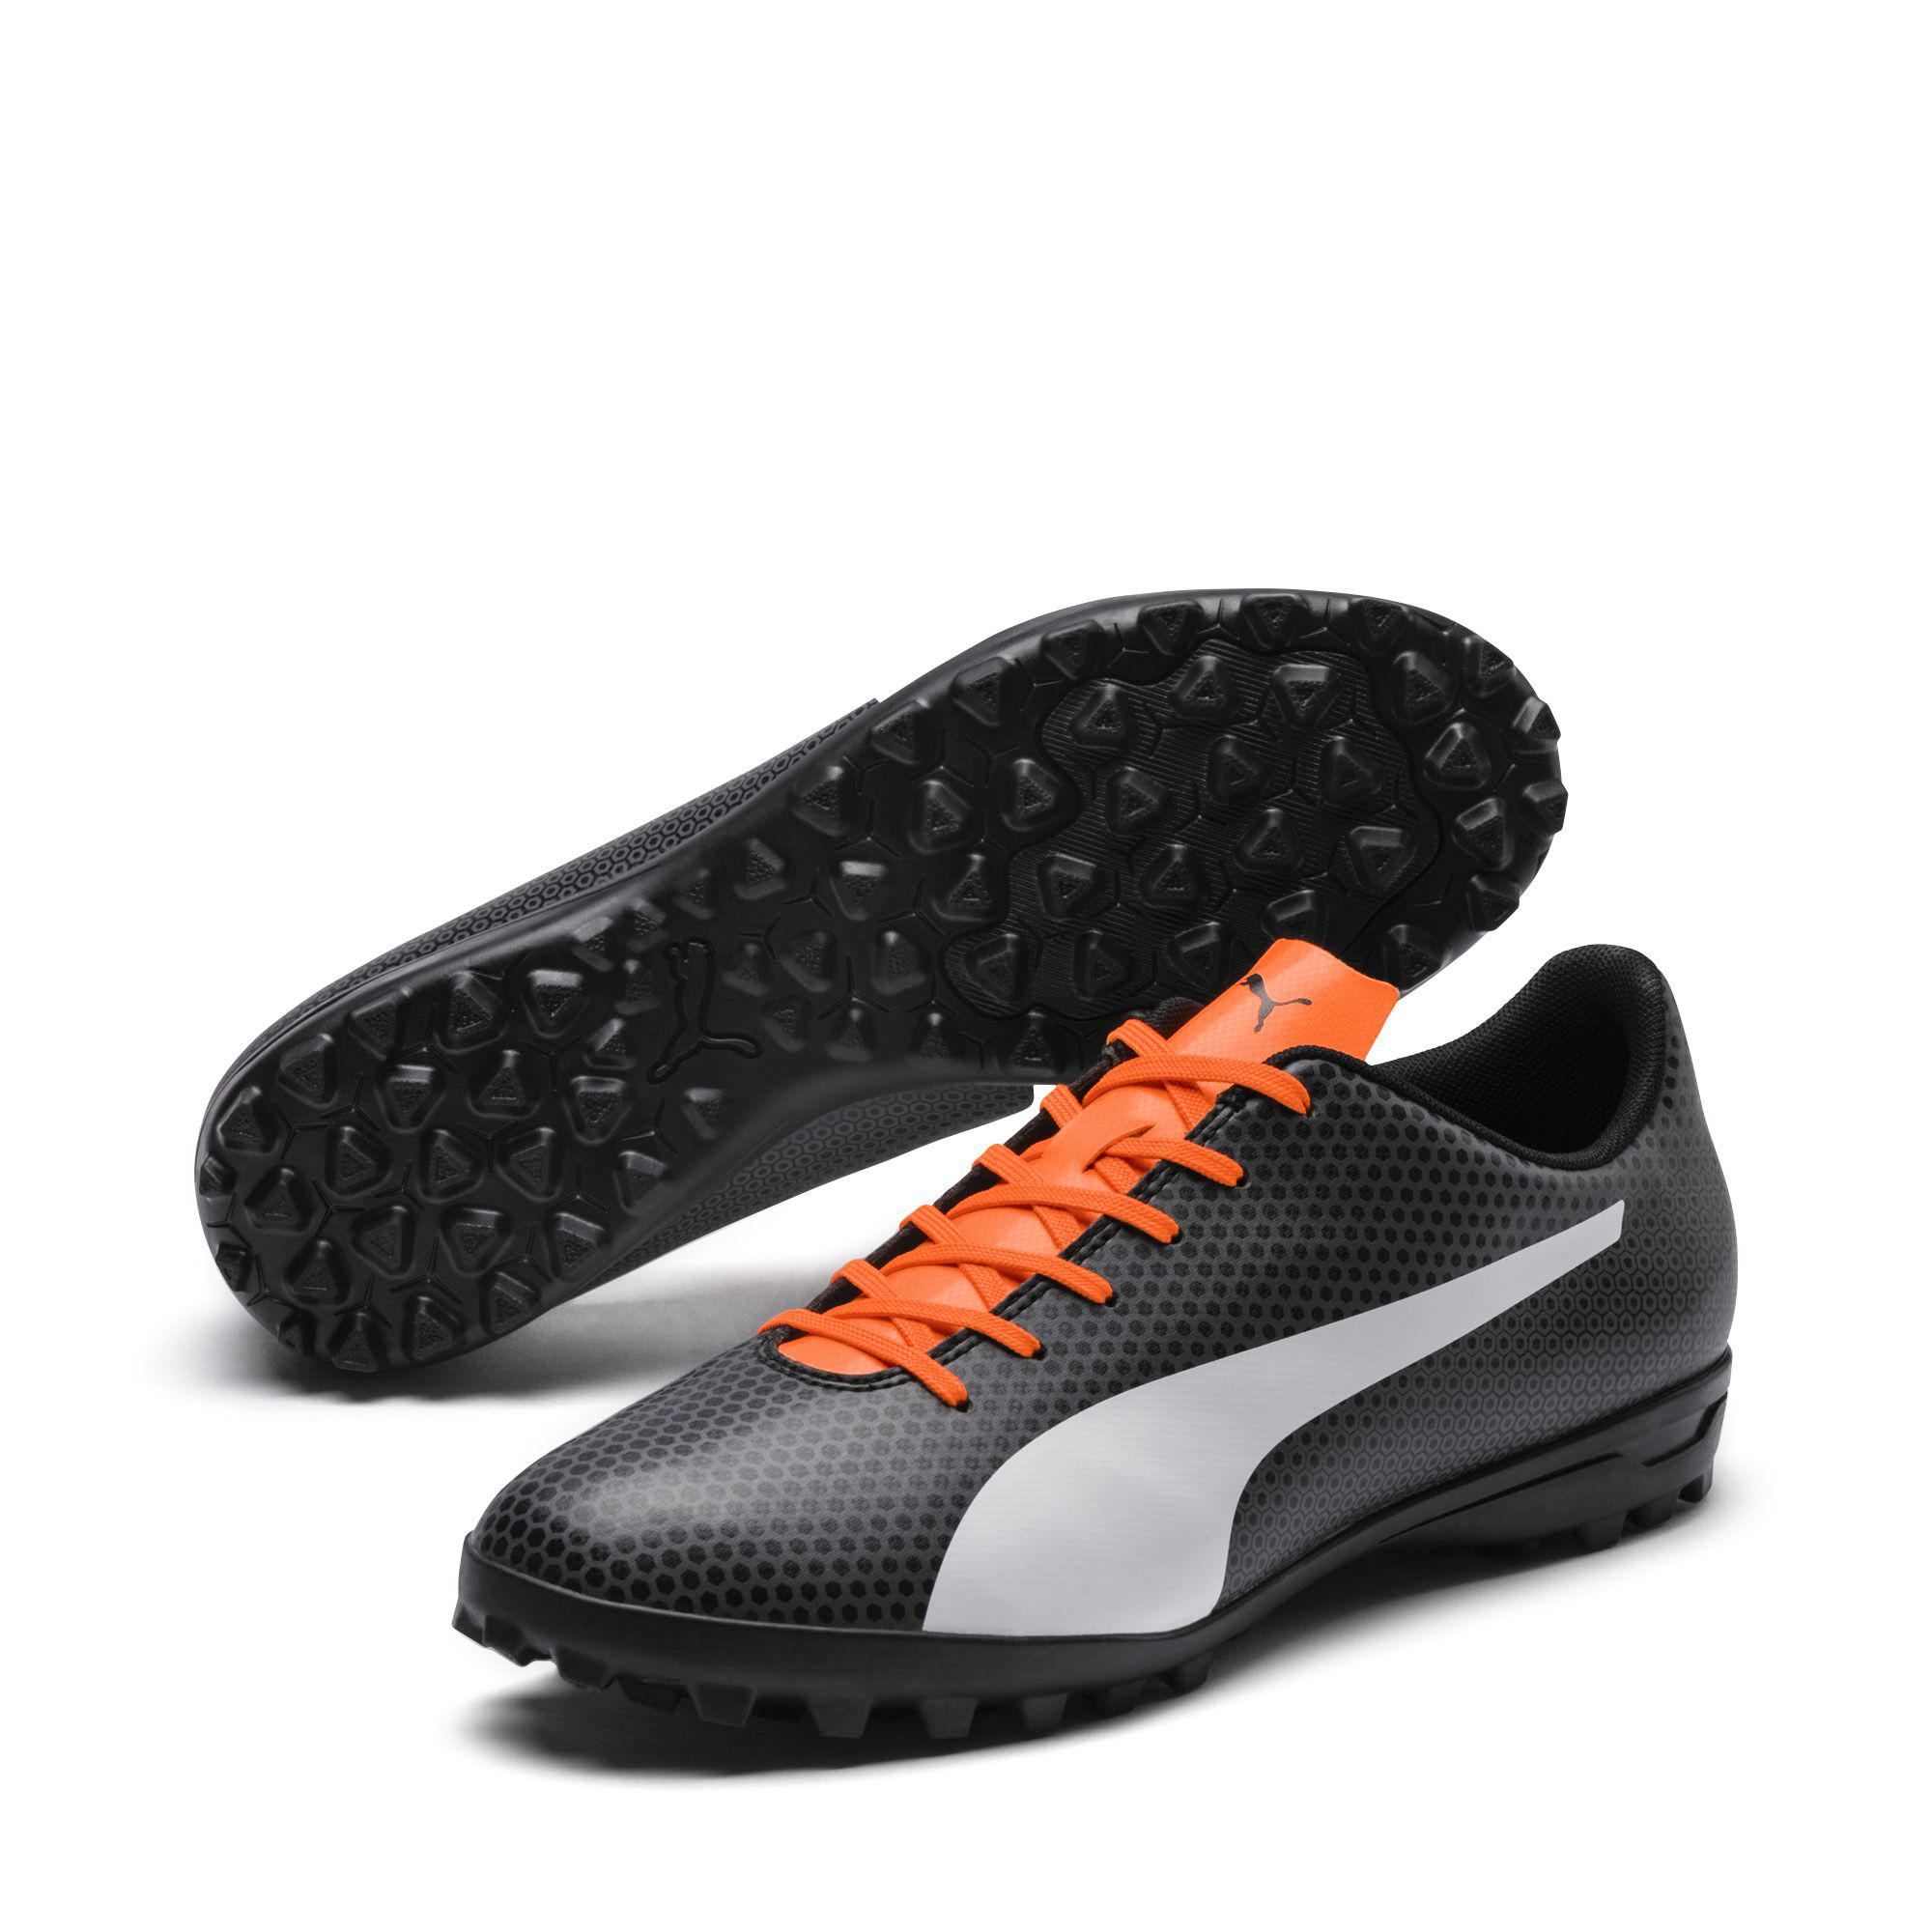 889db5cbf3ca PUMA - Black Spirit Tt Turf Soccer Shoes for Men - Lyst. View fullscreen